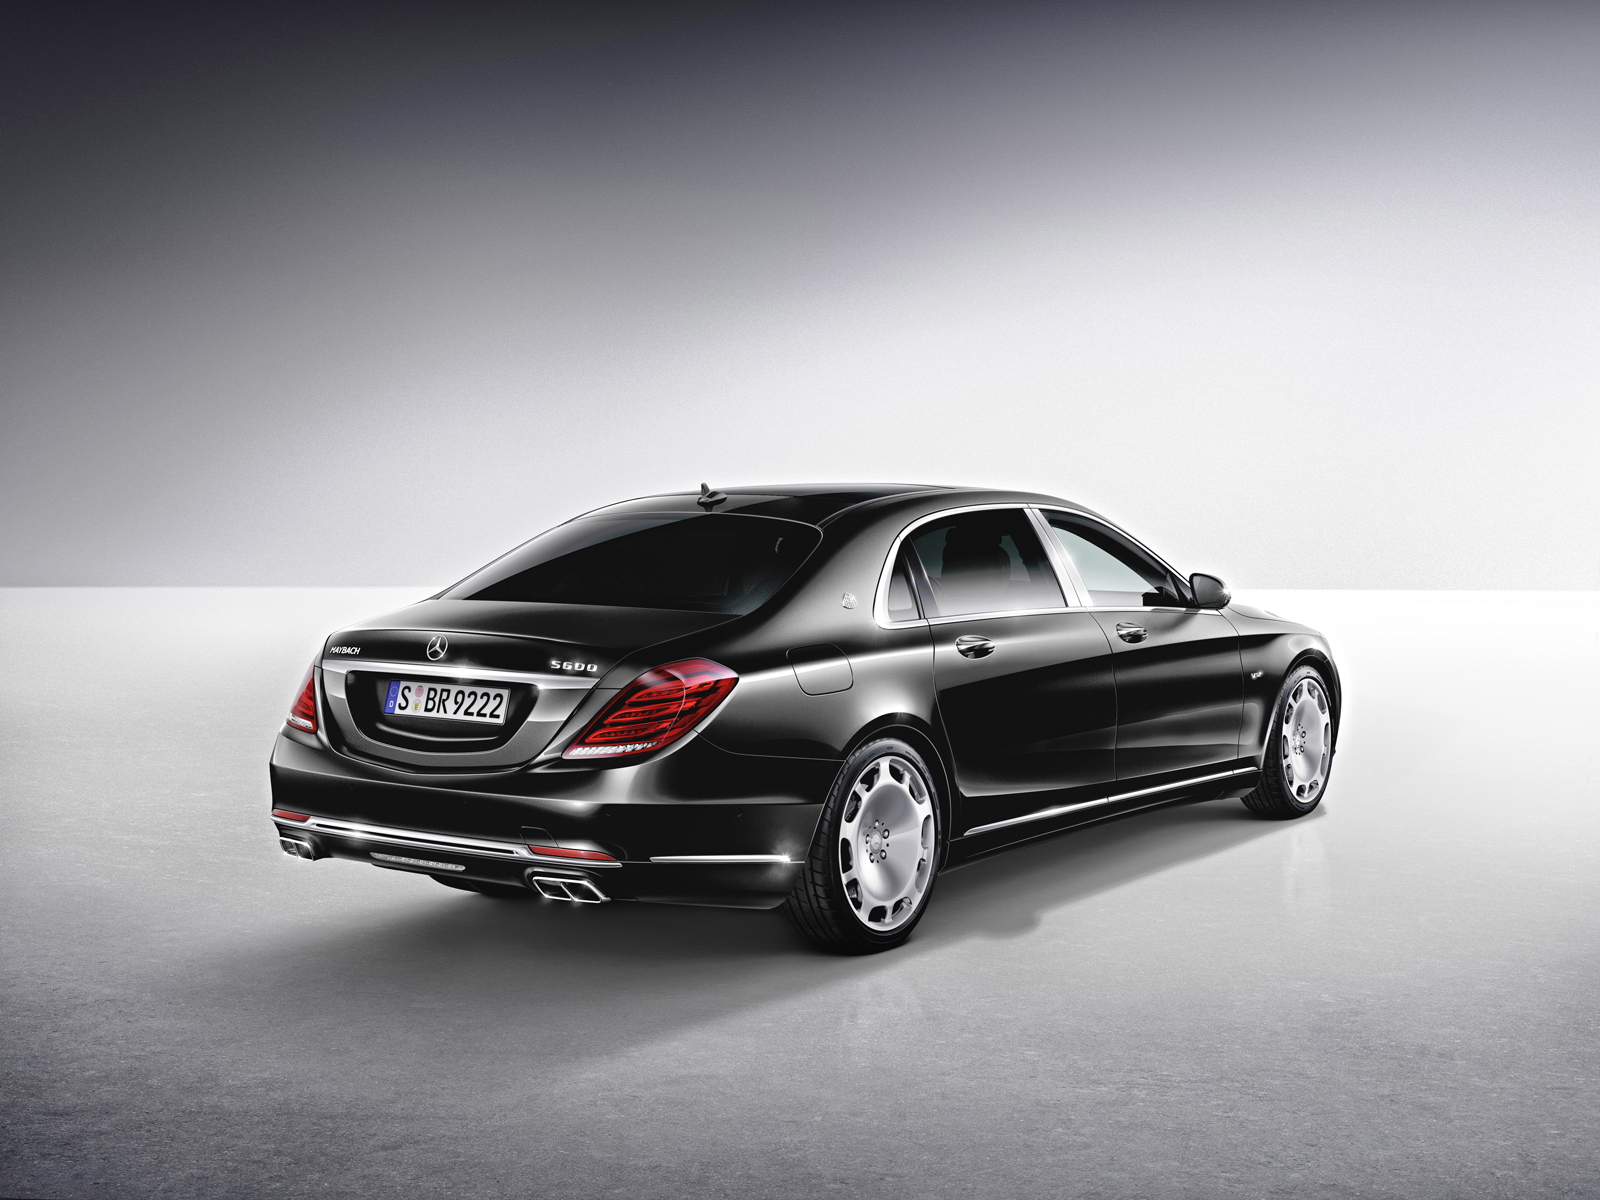 Mercedes maybach s550 4matic roll out with minor updates for 2017 maybach s 550 mercedes benz